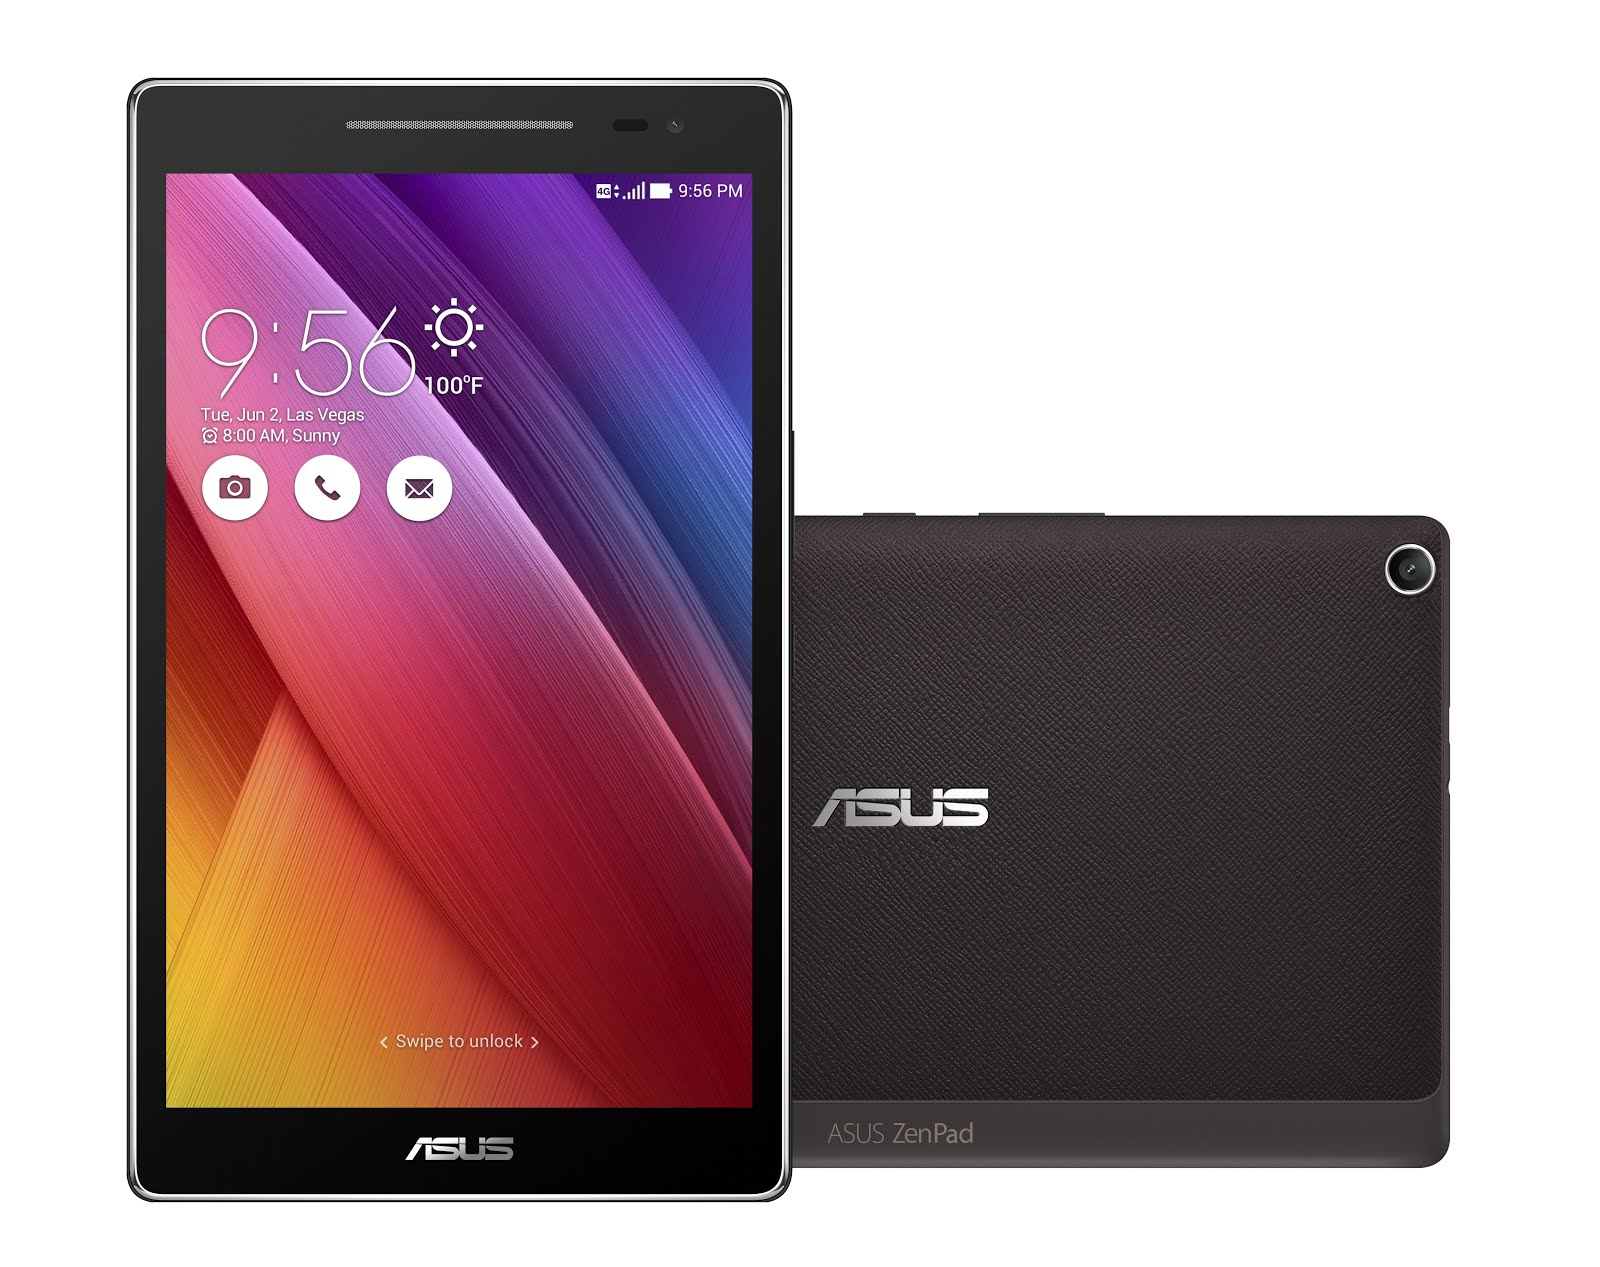 ASUS ZenPad 8 Tablet Review